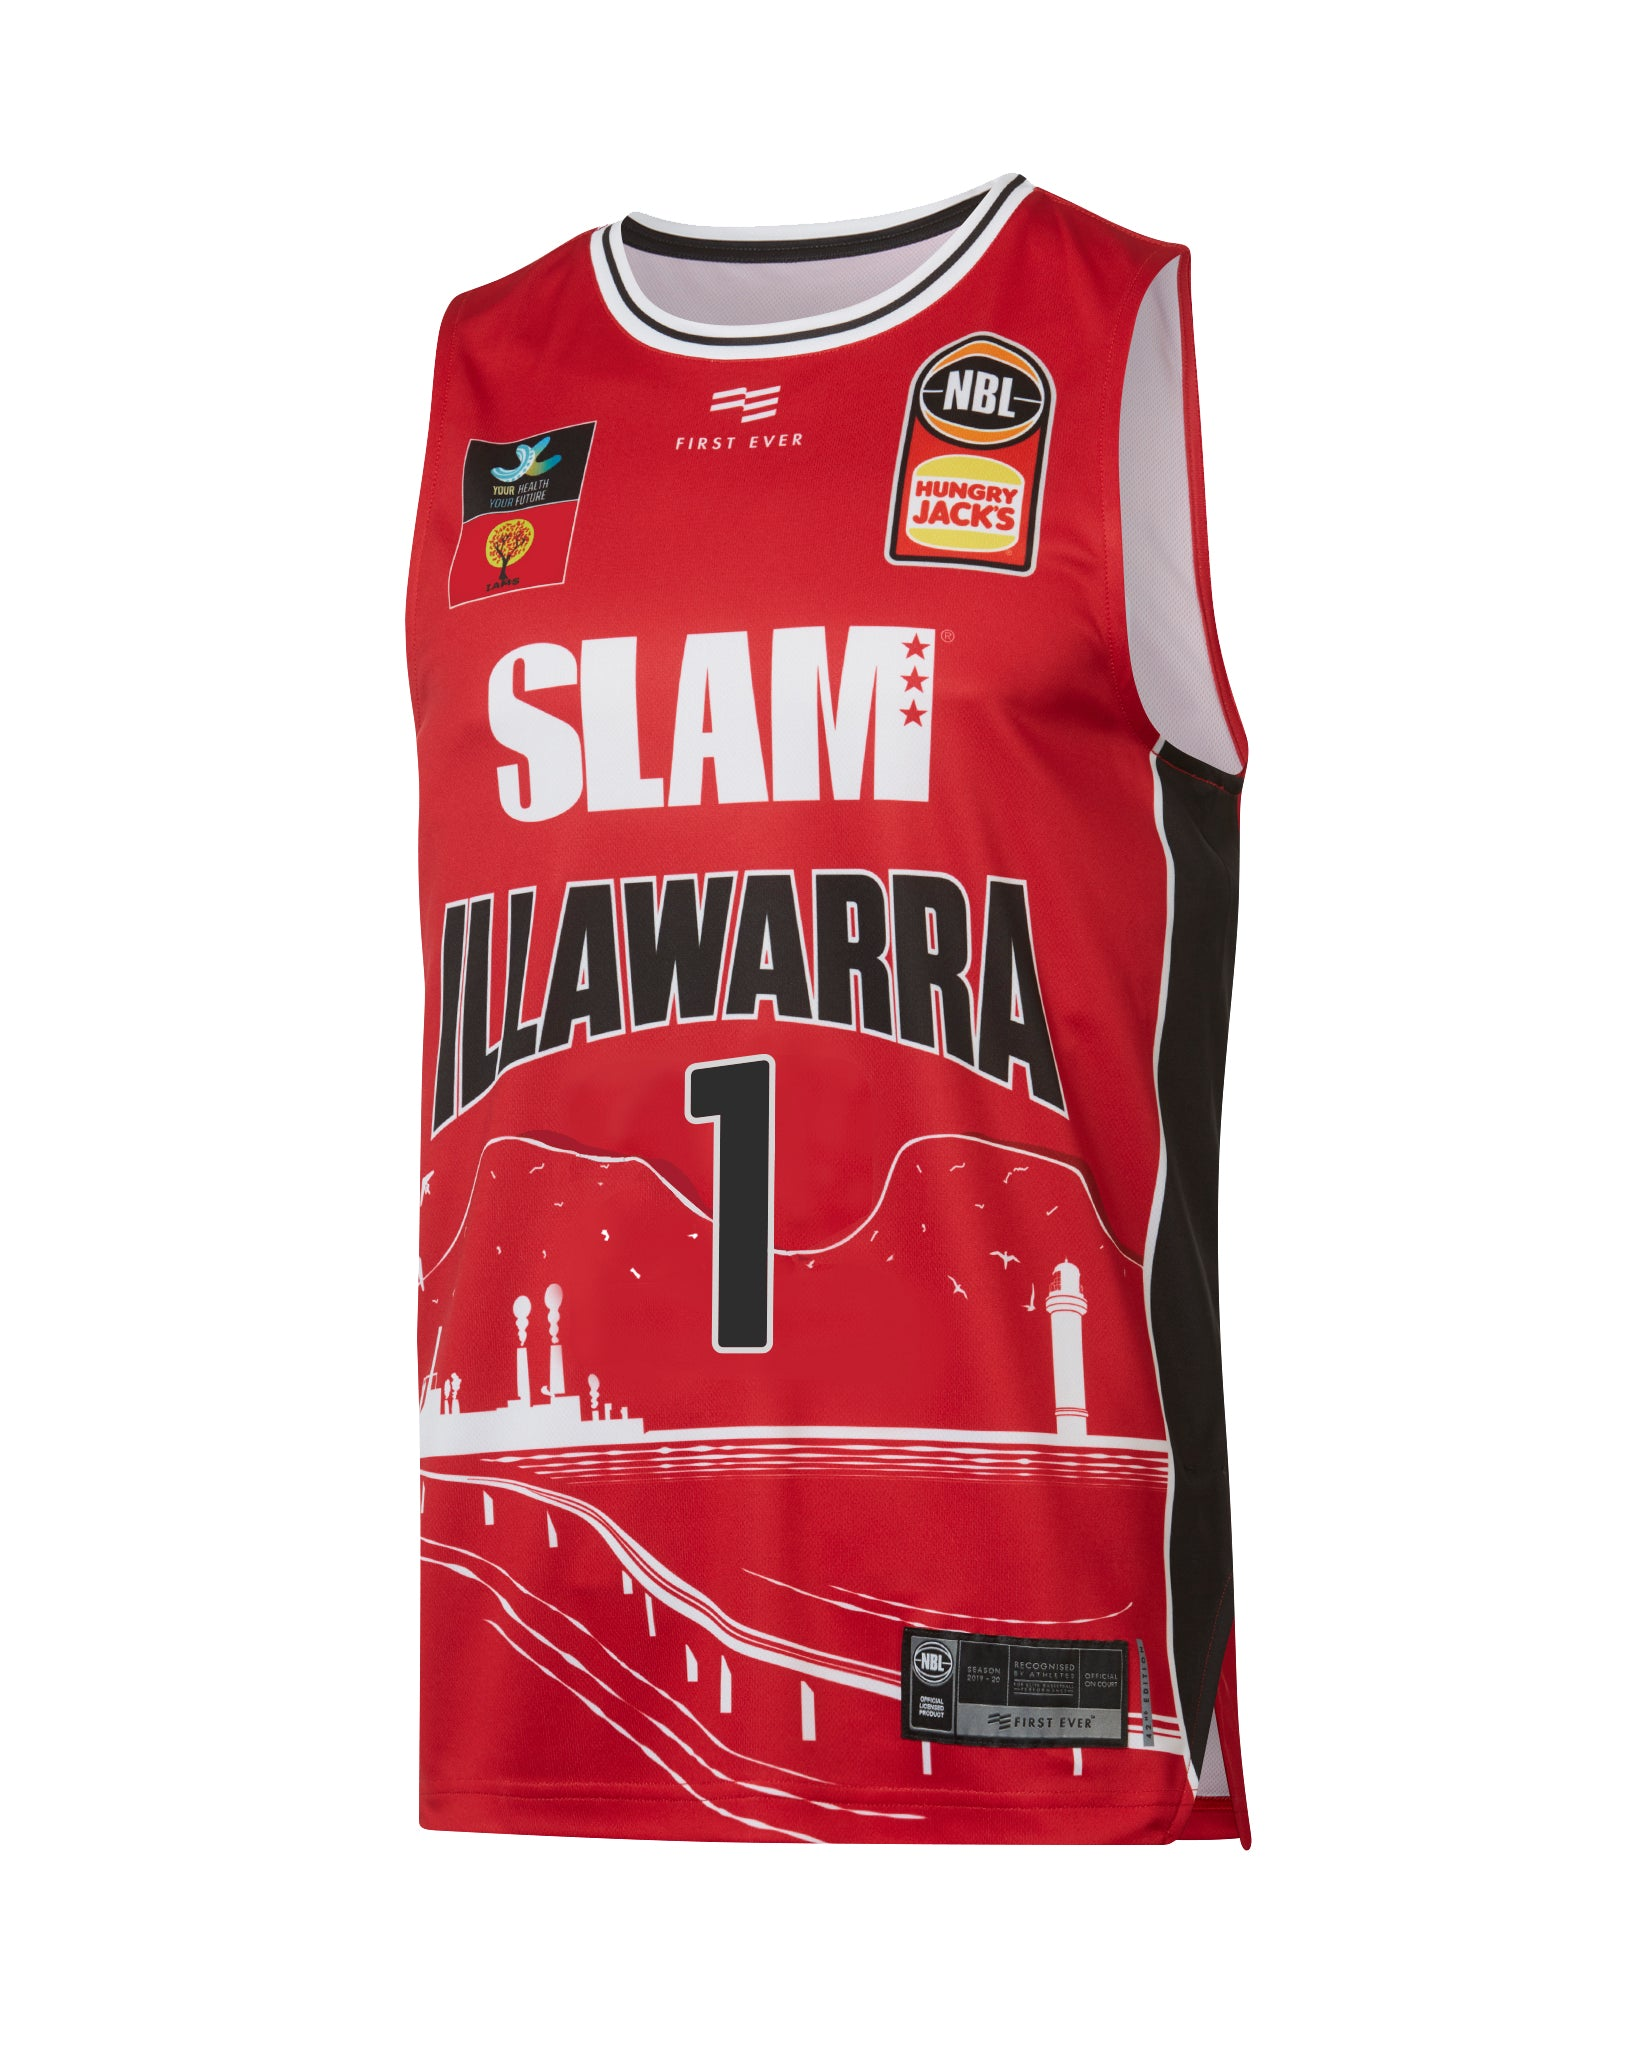 Illawarra Hawks 19/20 Authentic City Jersey - LaMelo Ball